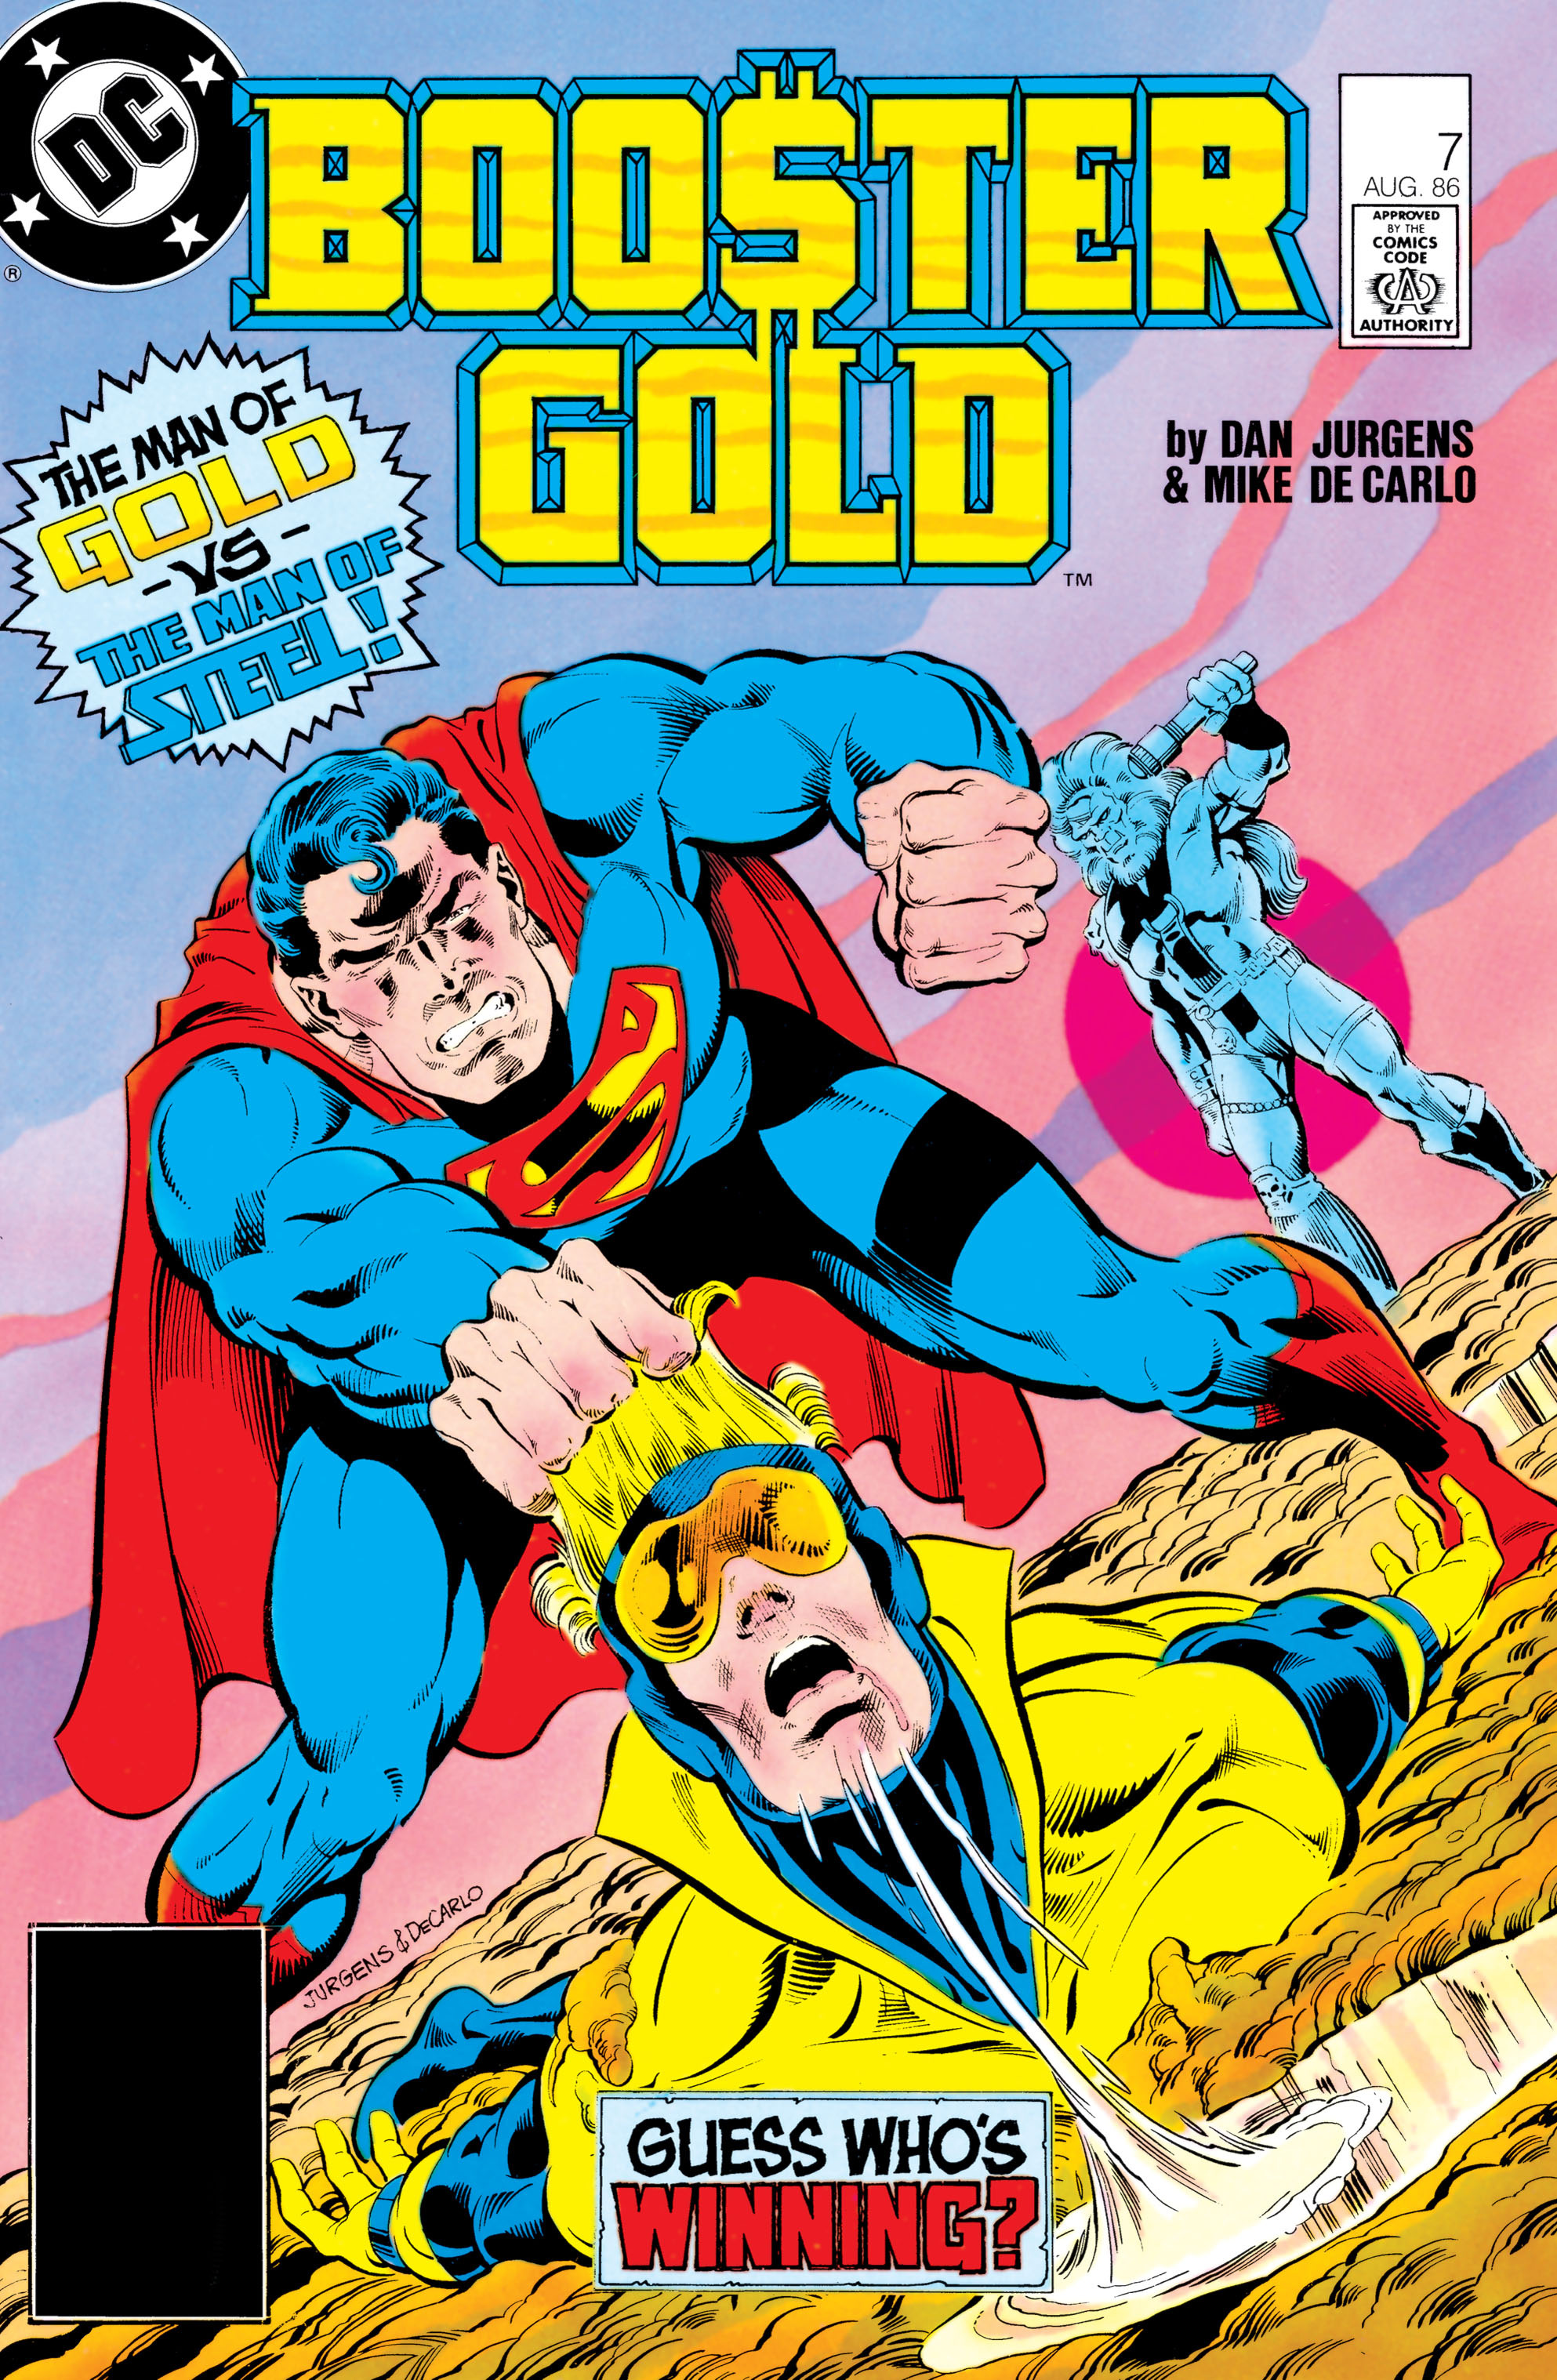 Booster Gold 1986 Issue 7